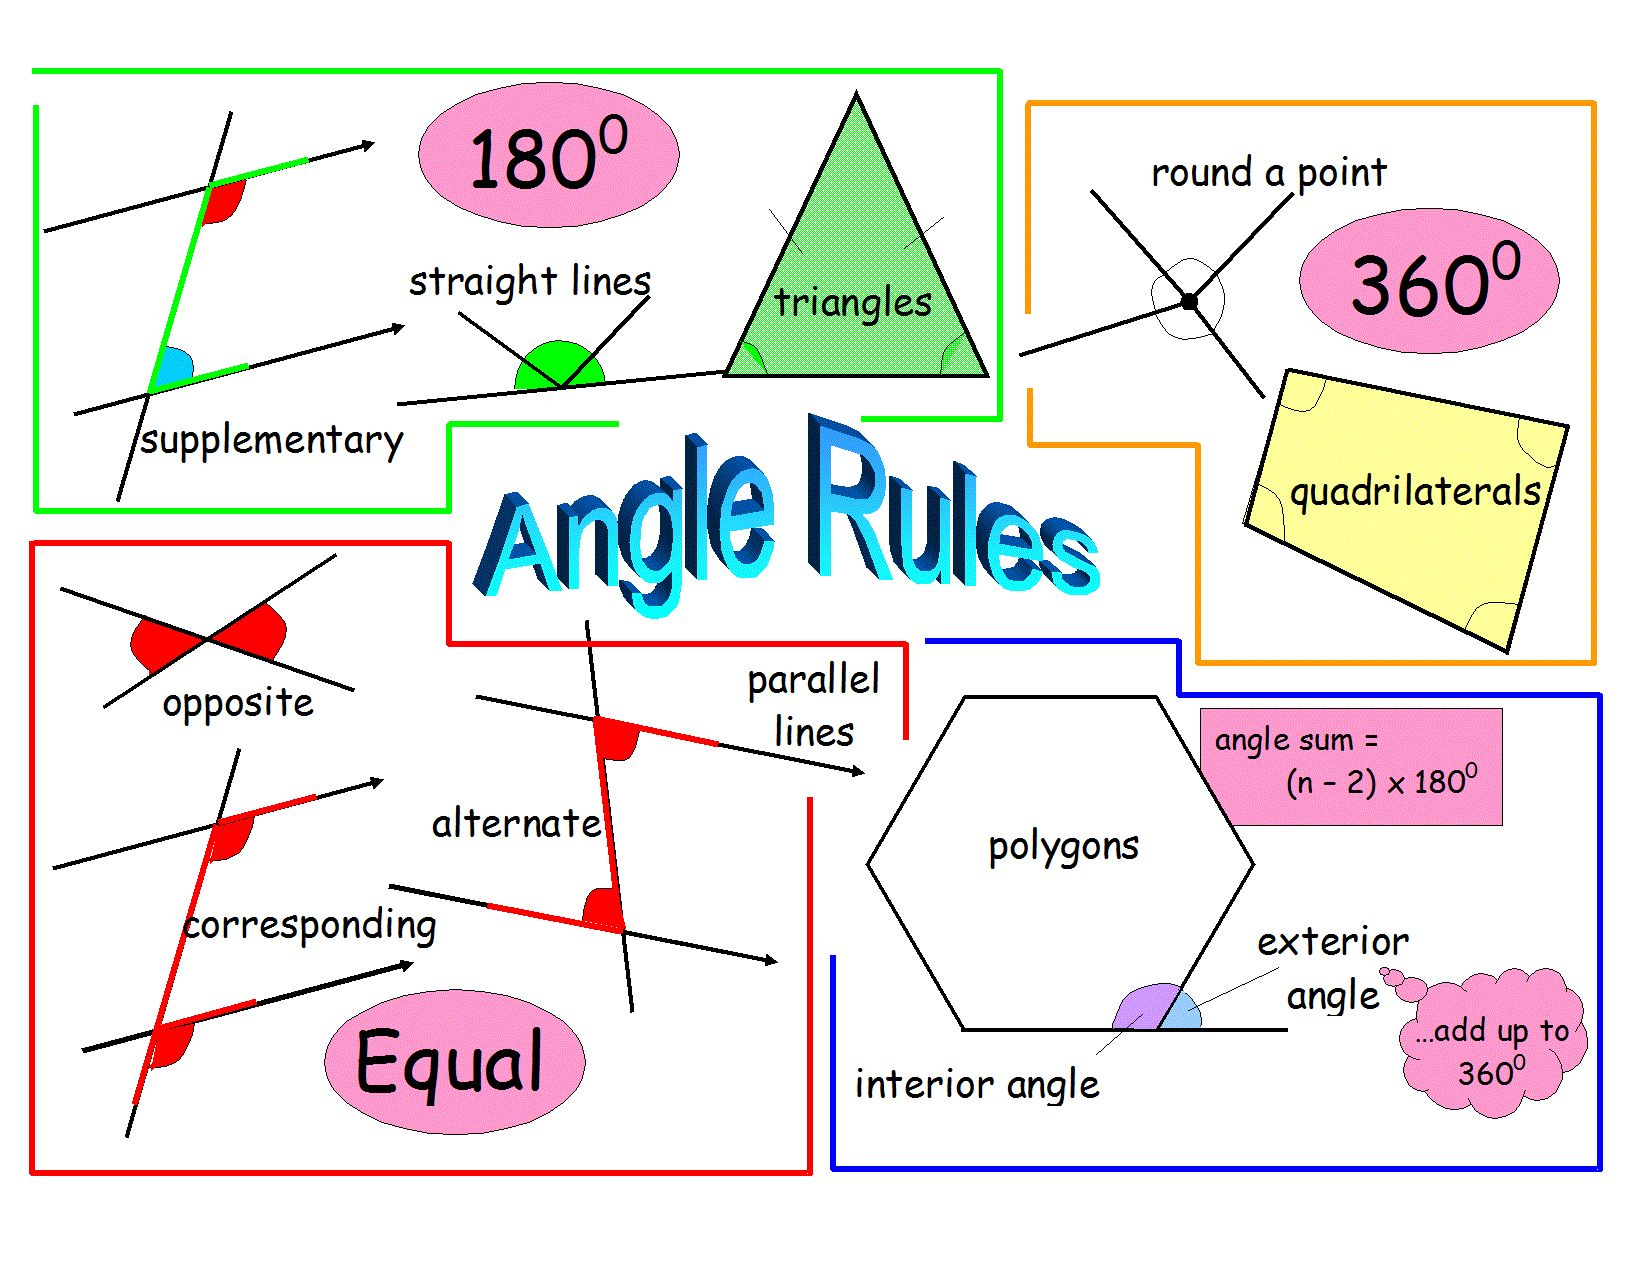 Pin by edwin lapuerta on sat math maths gcse math teaching math What do exterior angles of a triangle add up to